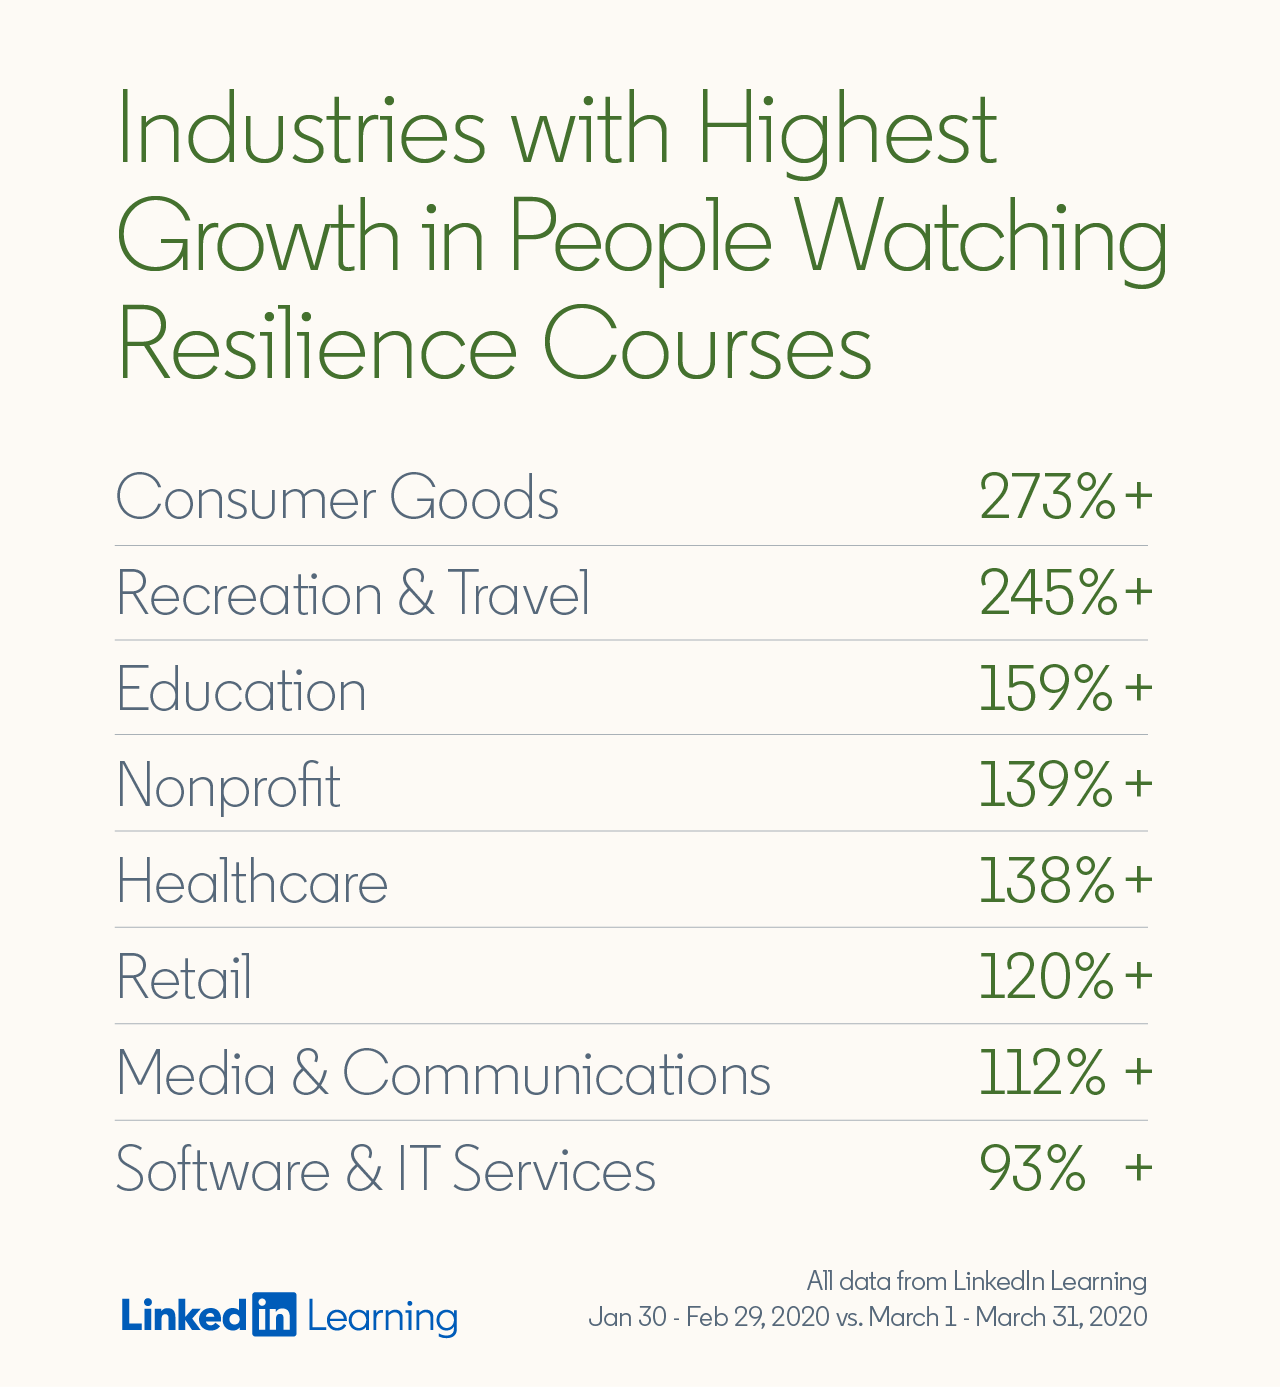 industries with highest growth in people watching resilience courses